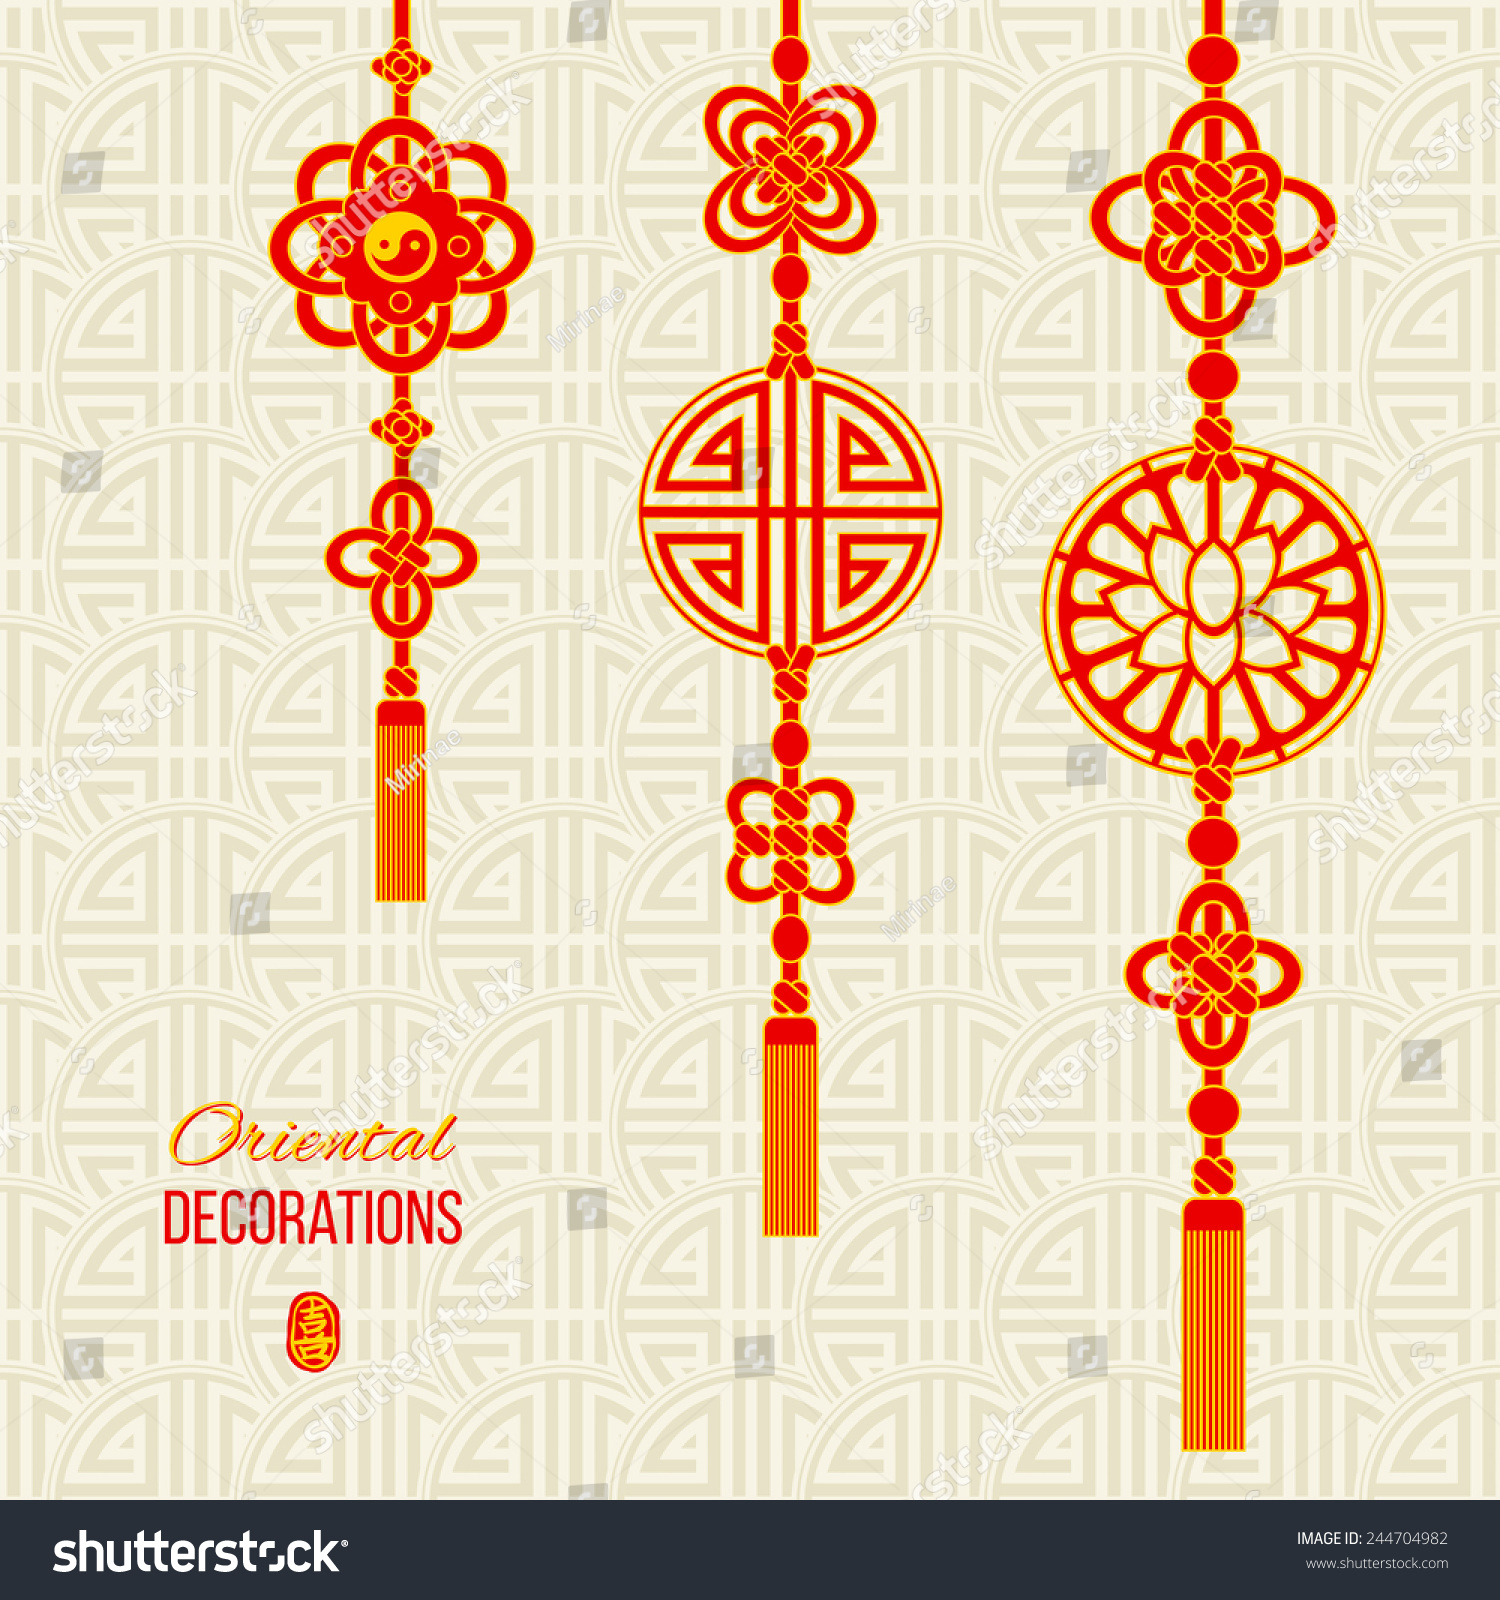 Royalty free oriental asian red and golden tassel 244704982 lotus image yin yang symbol and knot elements stamp with a chinese hieroglyph for joy asian seamless background with knot compositions biocorpaavc Images